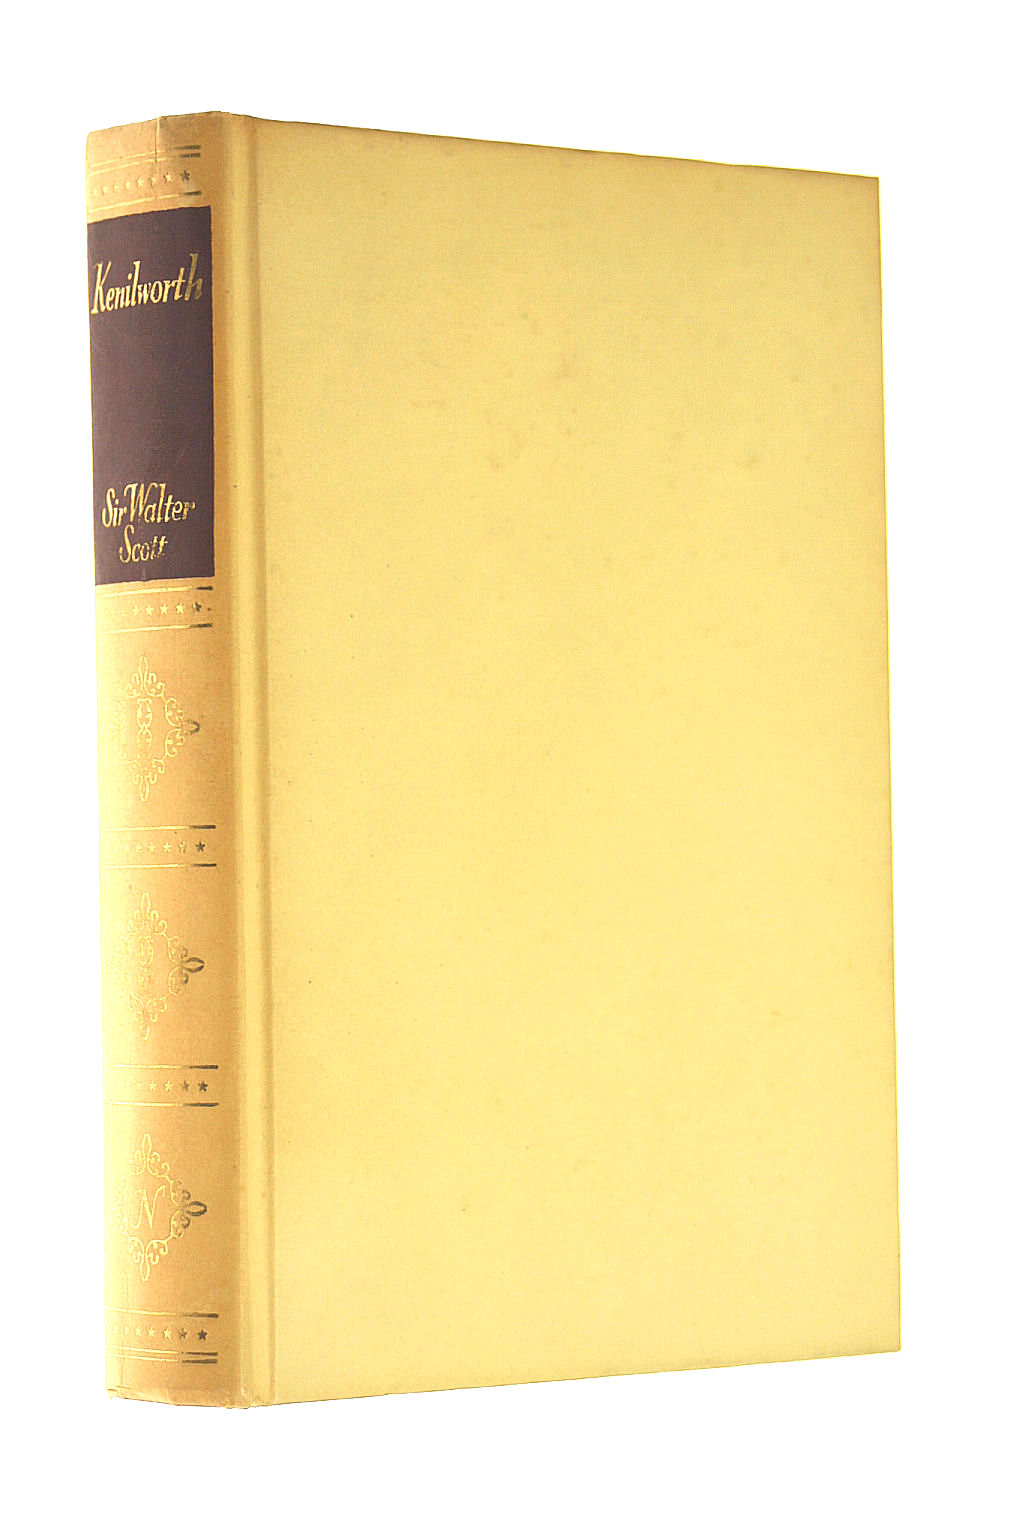 Image for KENILWORTH by Sir Walter Scott, Undated Hardcover, published by Thomas Nelson and Sons and Illustrated